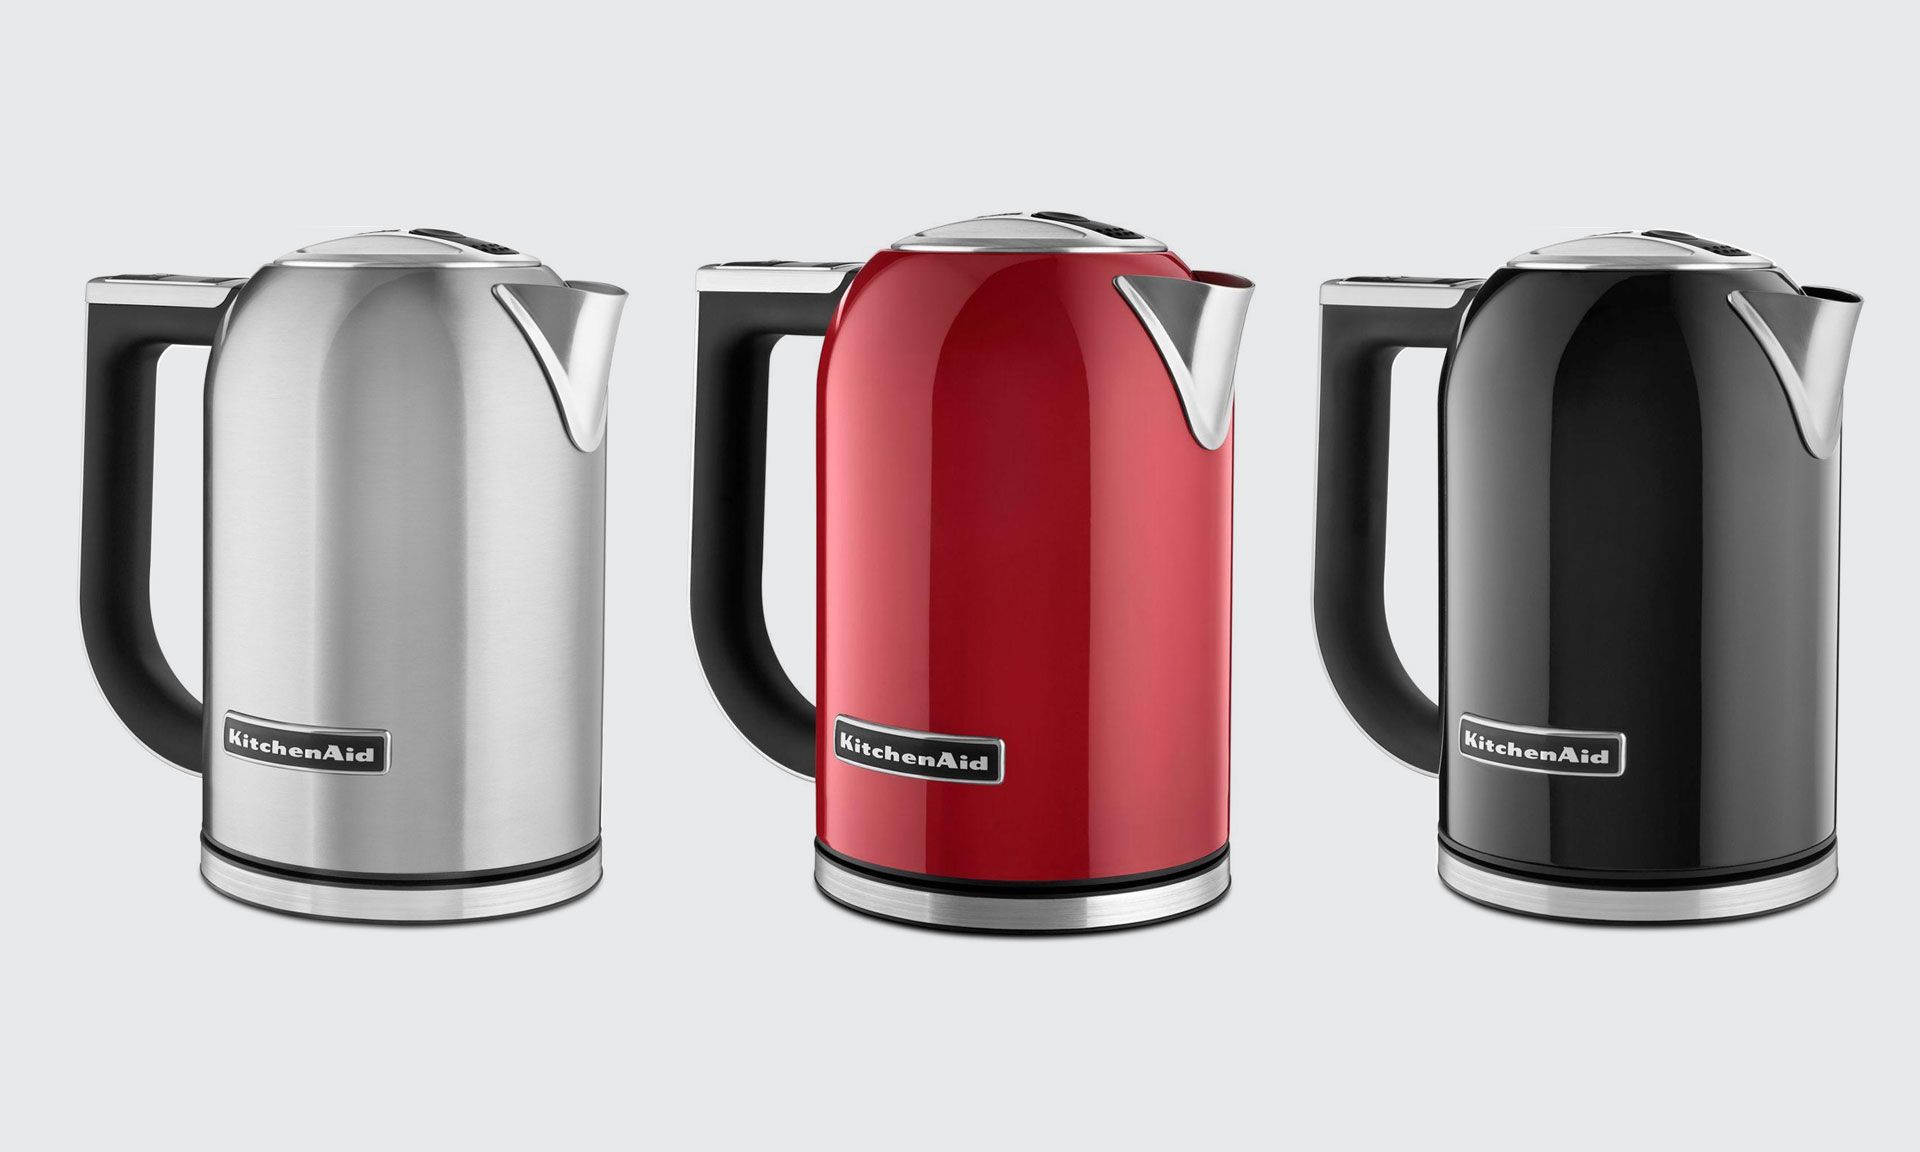 Kitchenaid Kettle Recall Whirlpool Confirms More Than 20 000 Uk